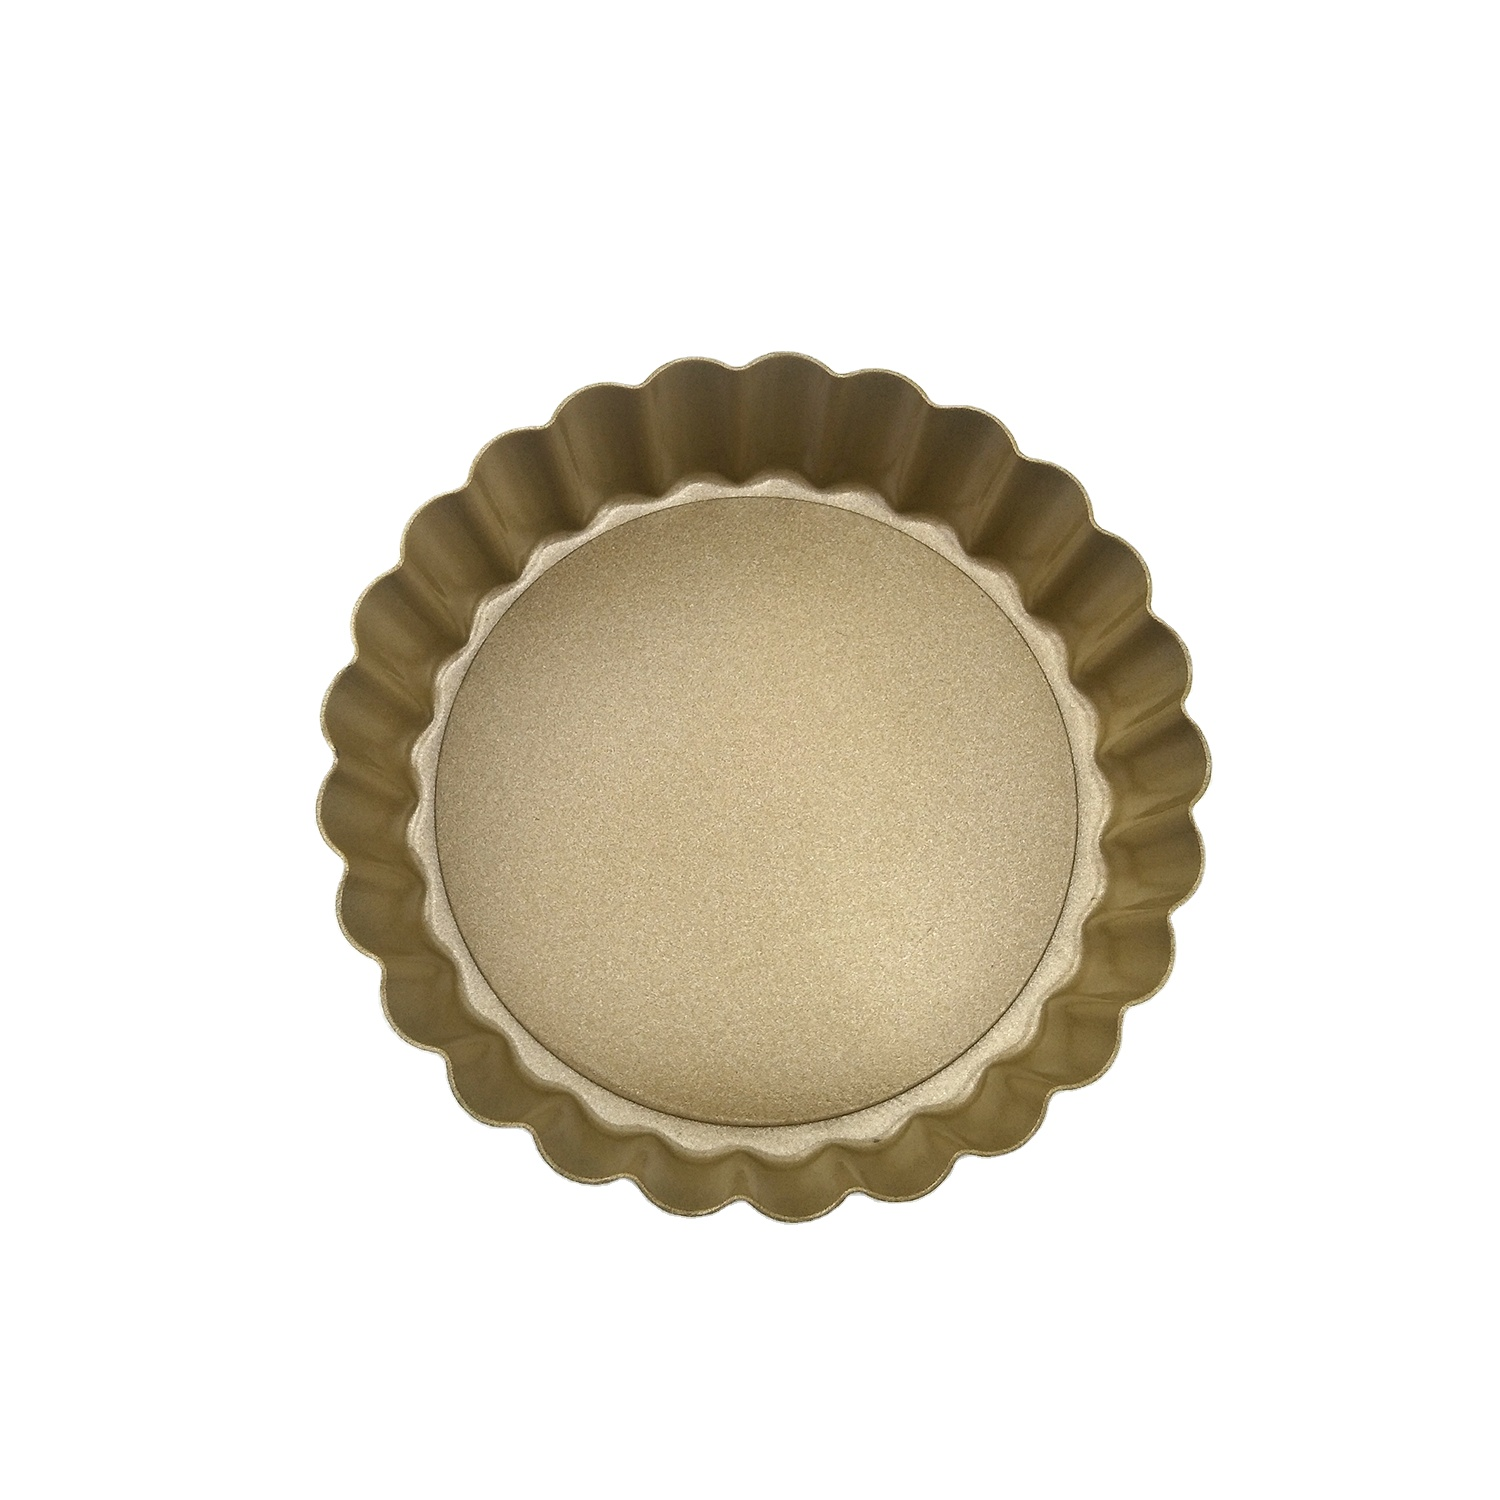 Hot Sale Carbon Steel Non-stick New Design Round Lace Pattern with Removable Bottom Style pie pan Tart tin Tart Pan